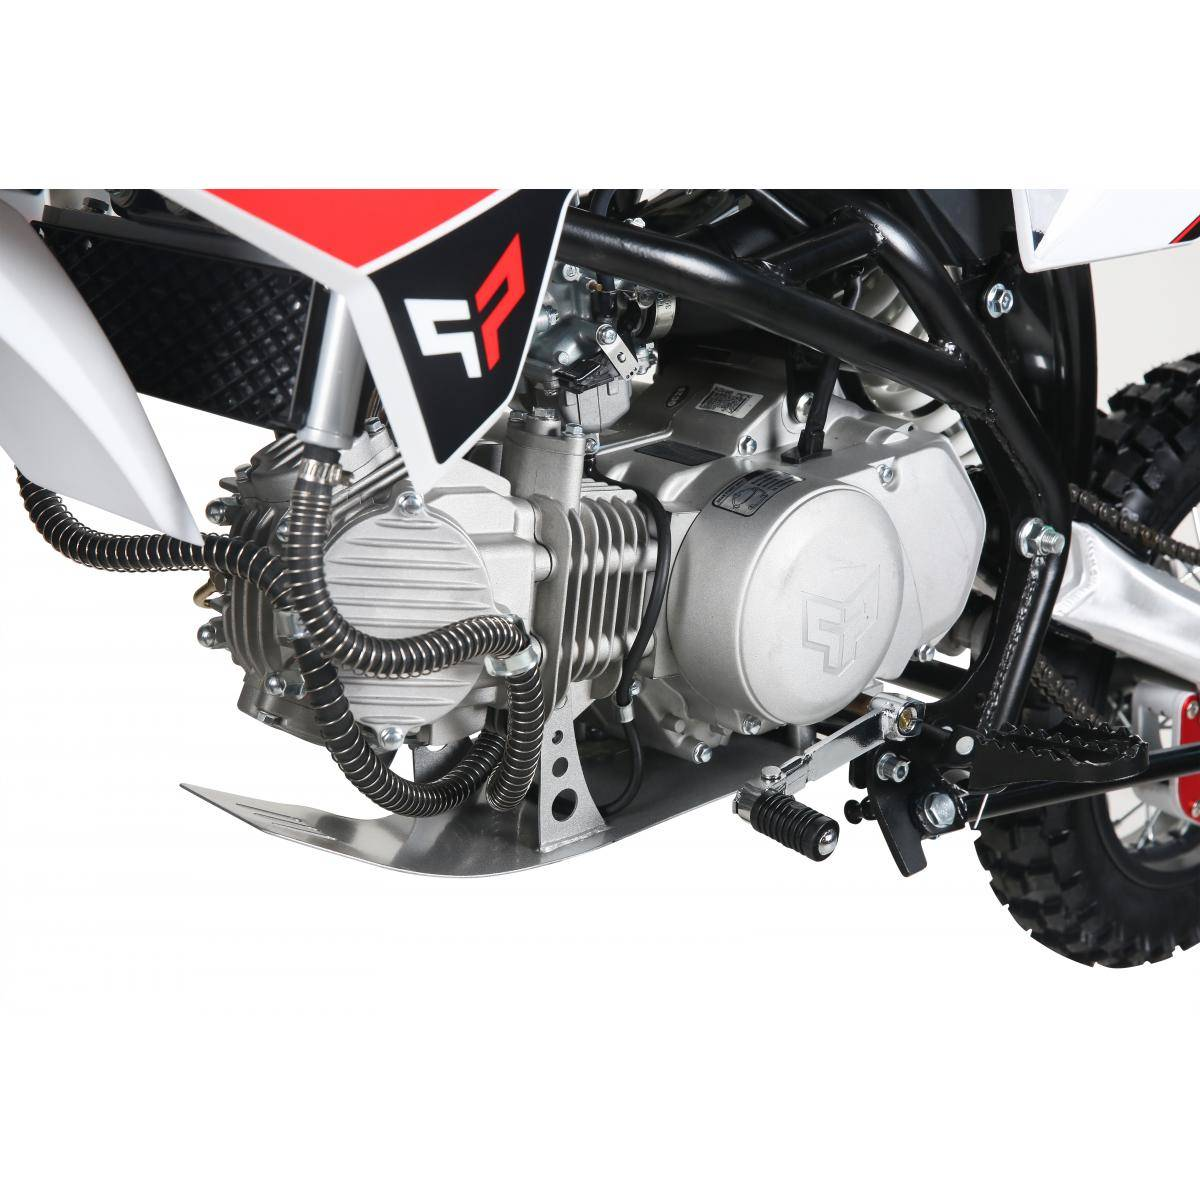 2021 Pitster Pro MXR 155 MANUAL CLUTCH in Portland, Oregon - Photo 3